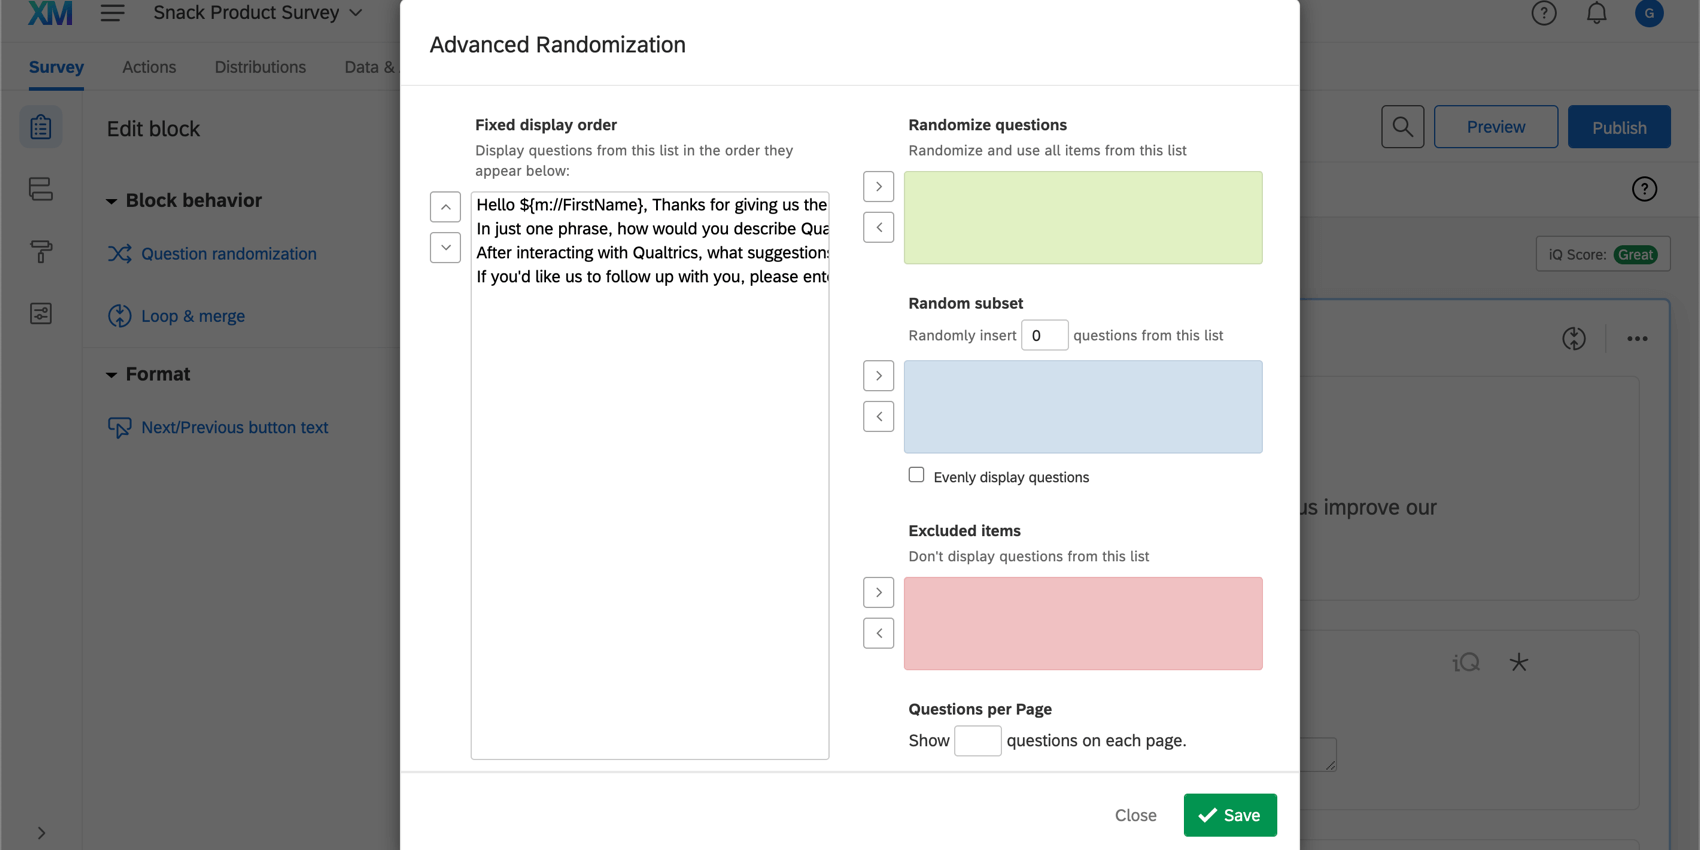 Advanced randomization options in the advanced randomization menu; includes fixed display order, randomize questions, random subset, excluded items, and questions per page